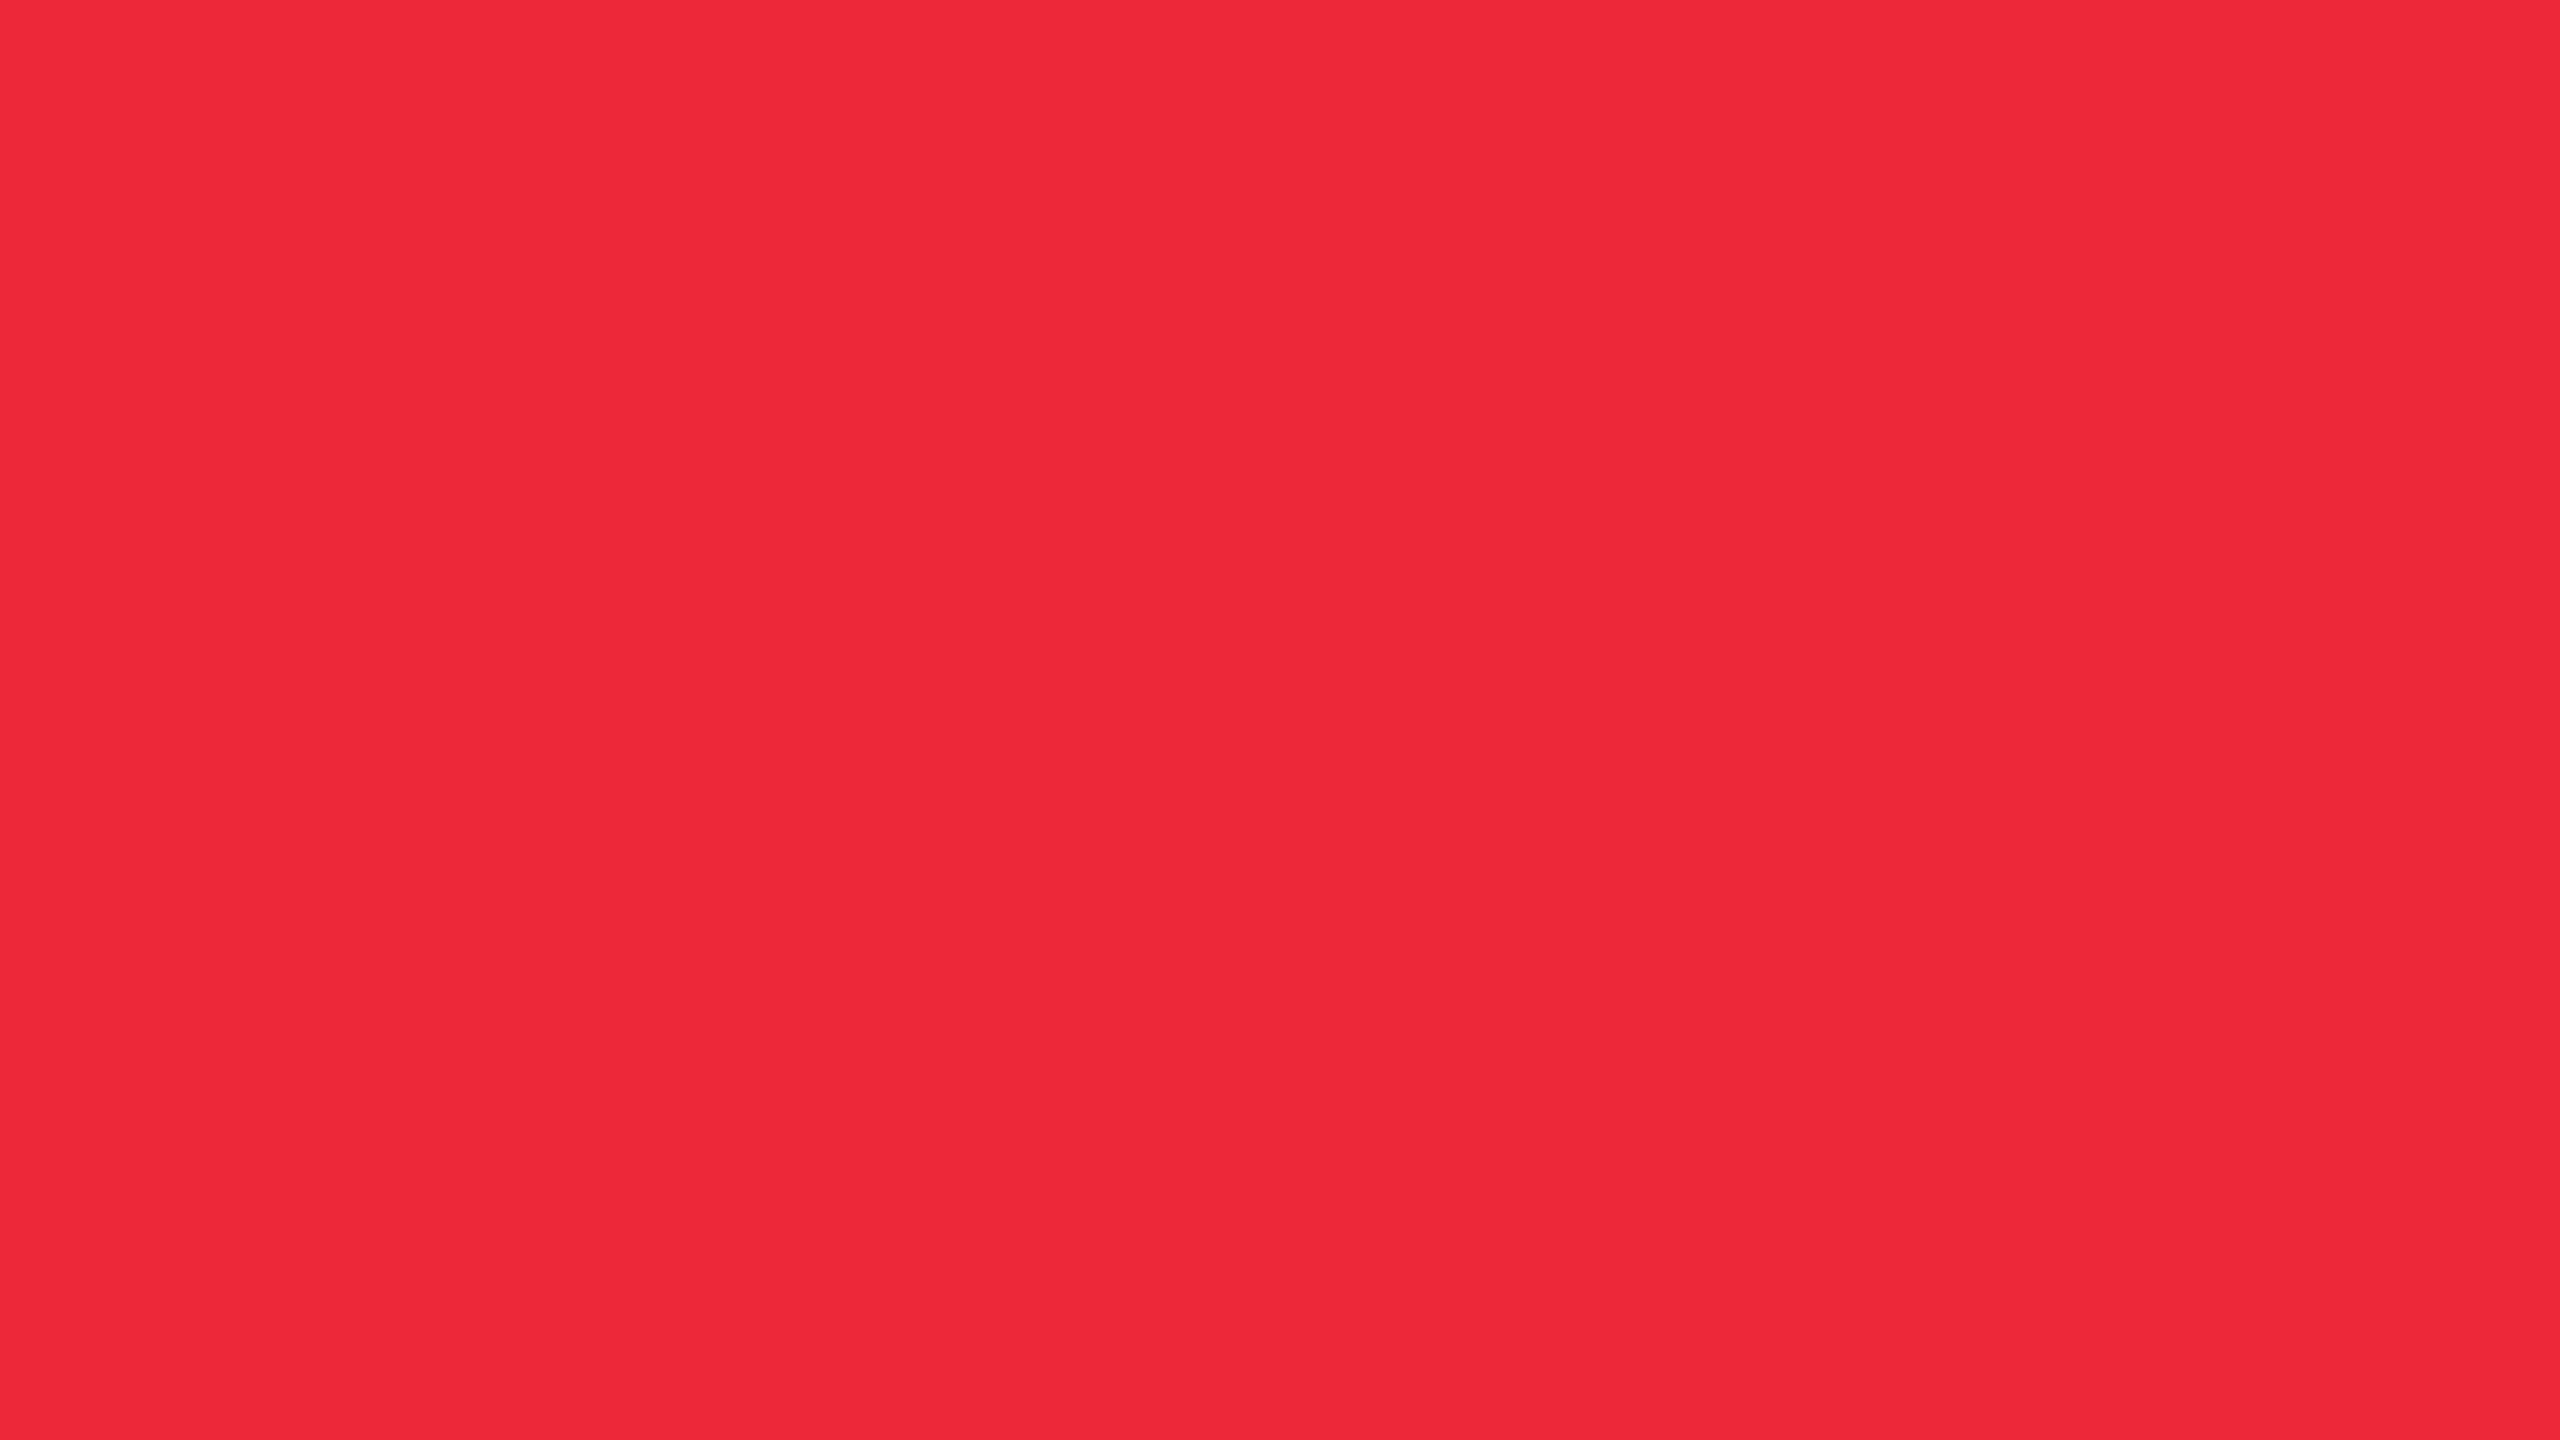 2560x1440 Red Pantone Solid Color Background